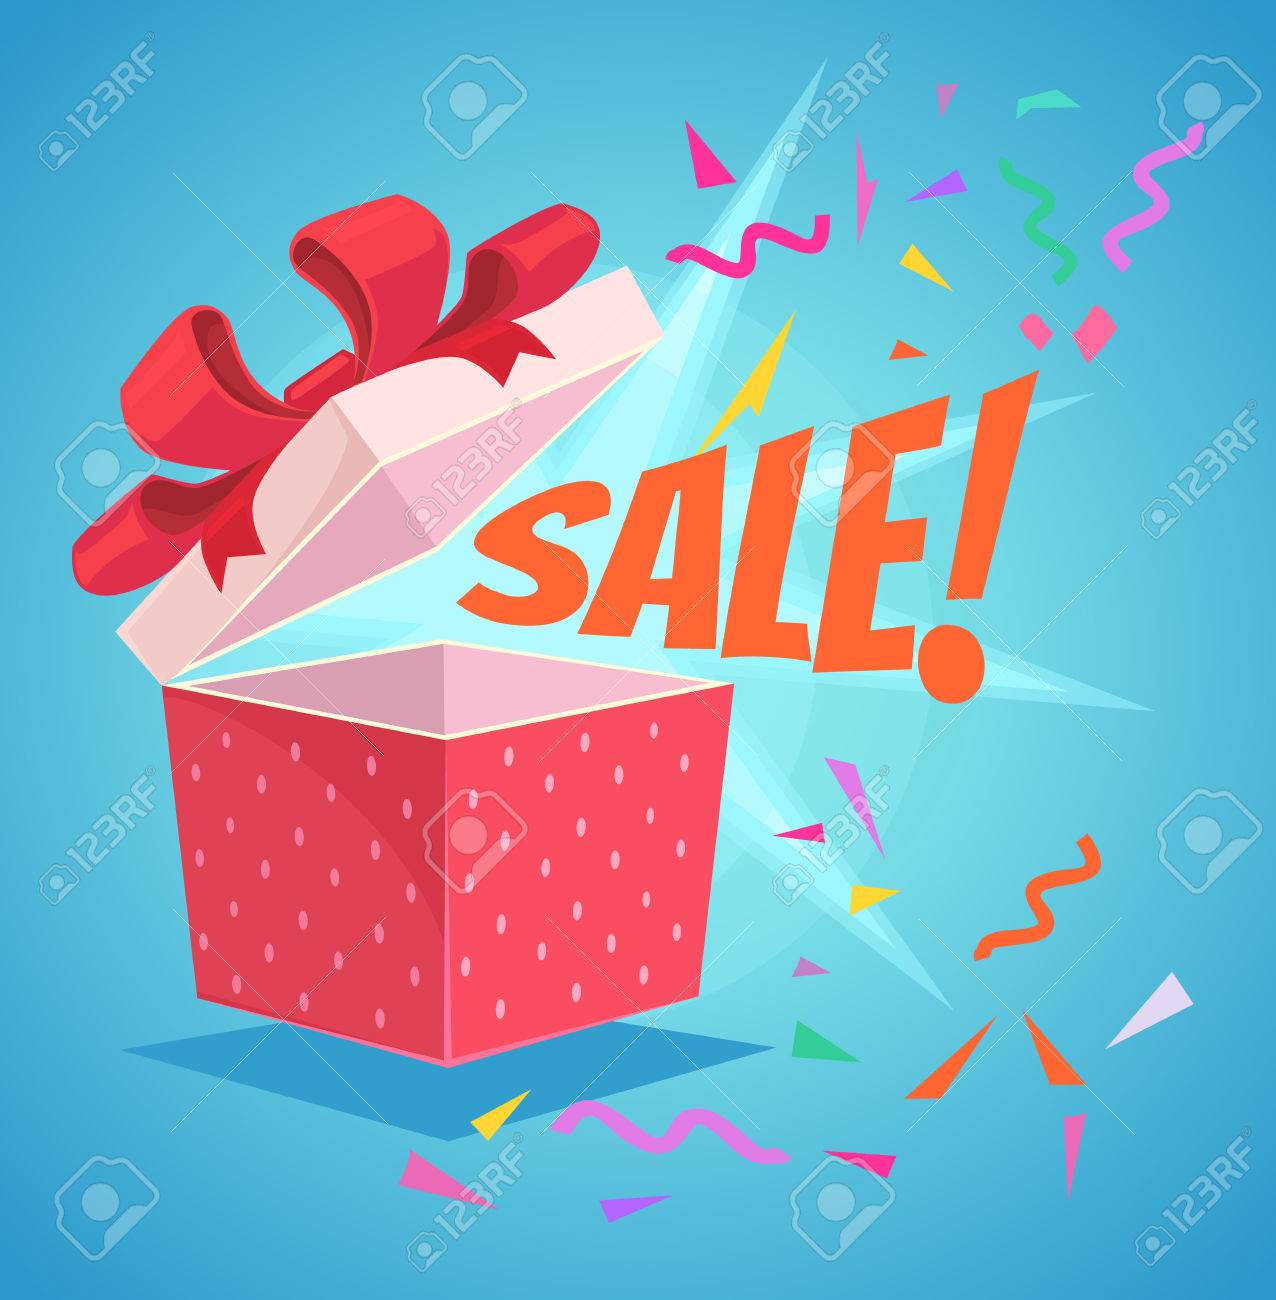 Open sale gift box with red bow and sale word. Discount banner. Vector flat cartoon illustration - 64259781